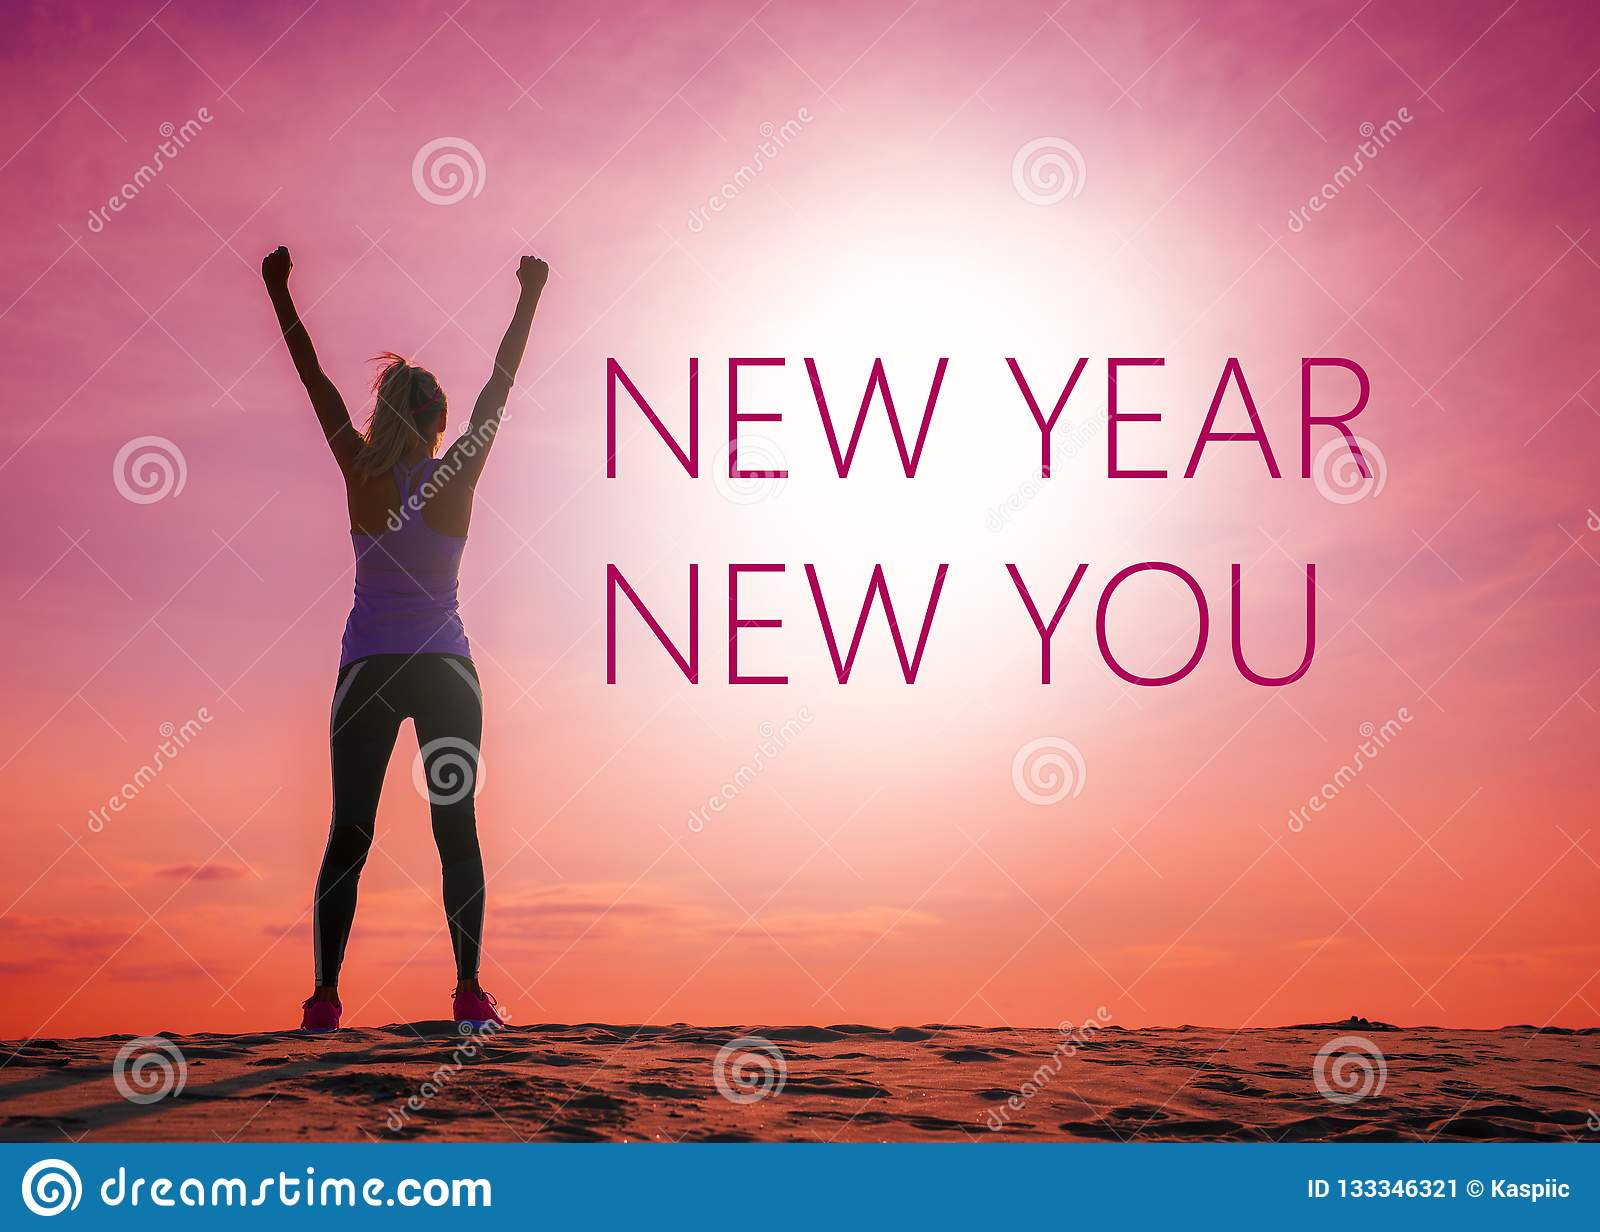 new year new you text quote on the image of w s silhouette at